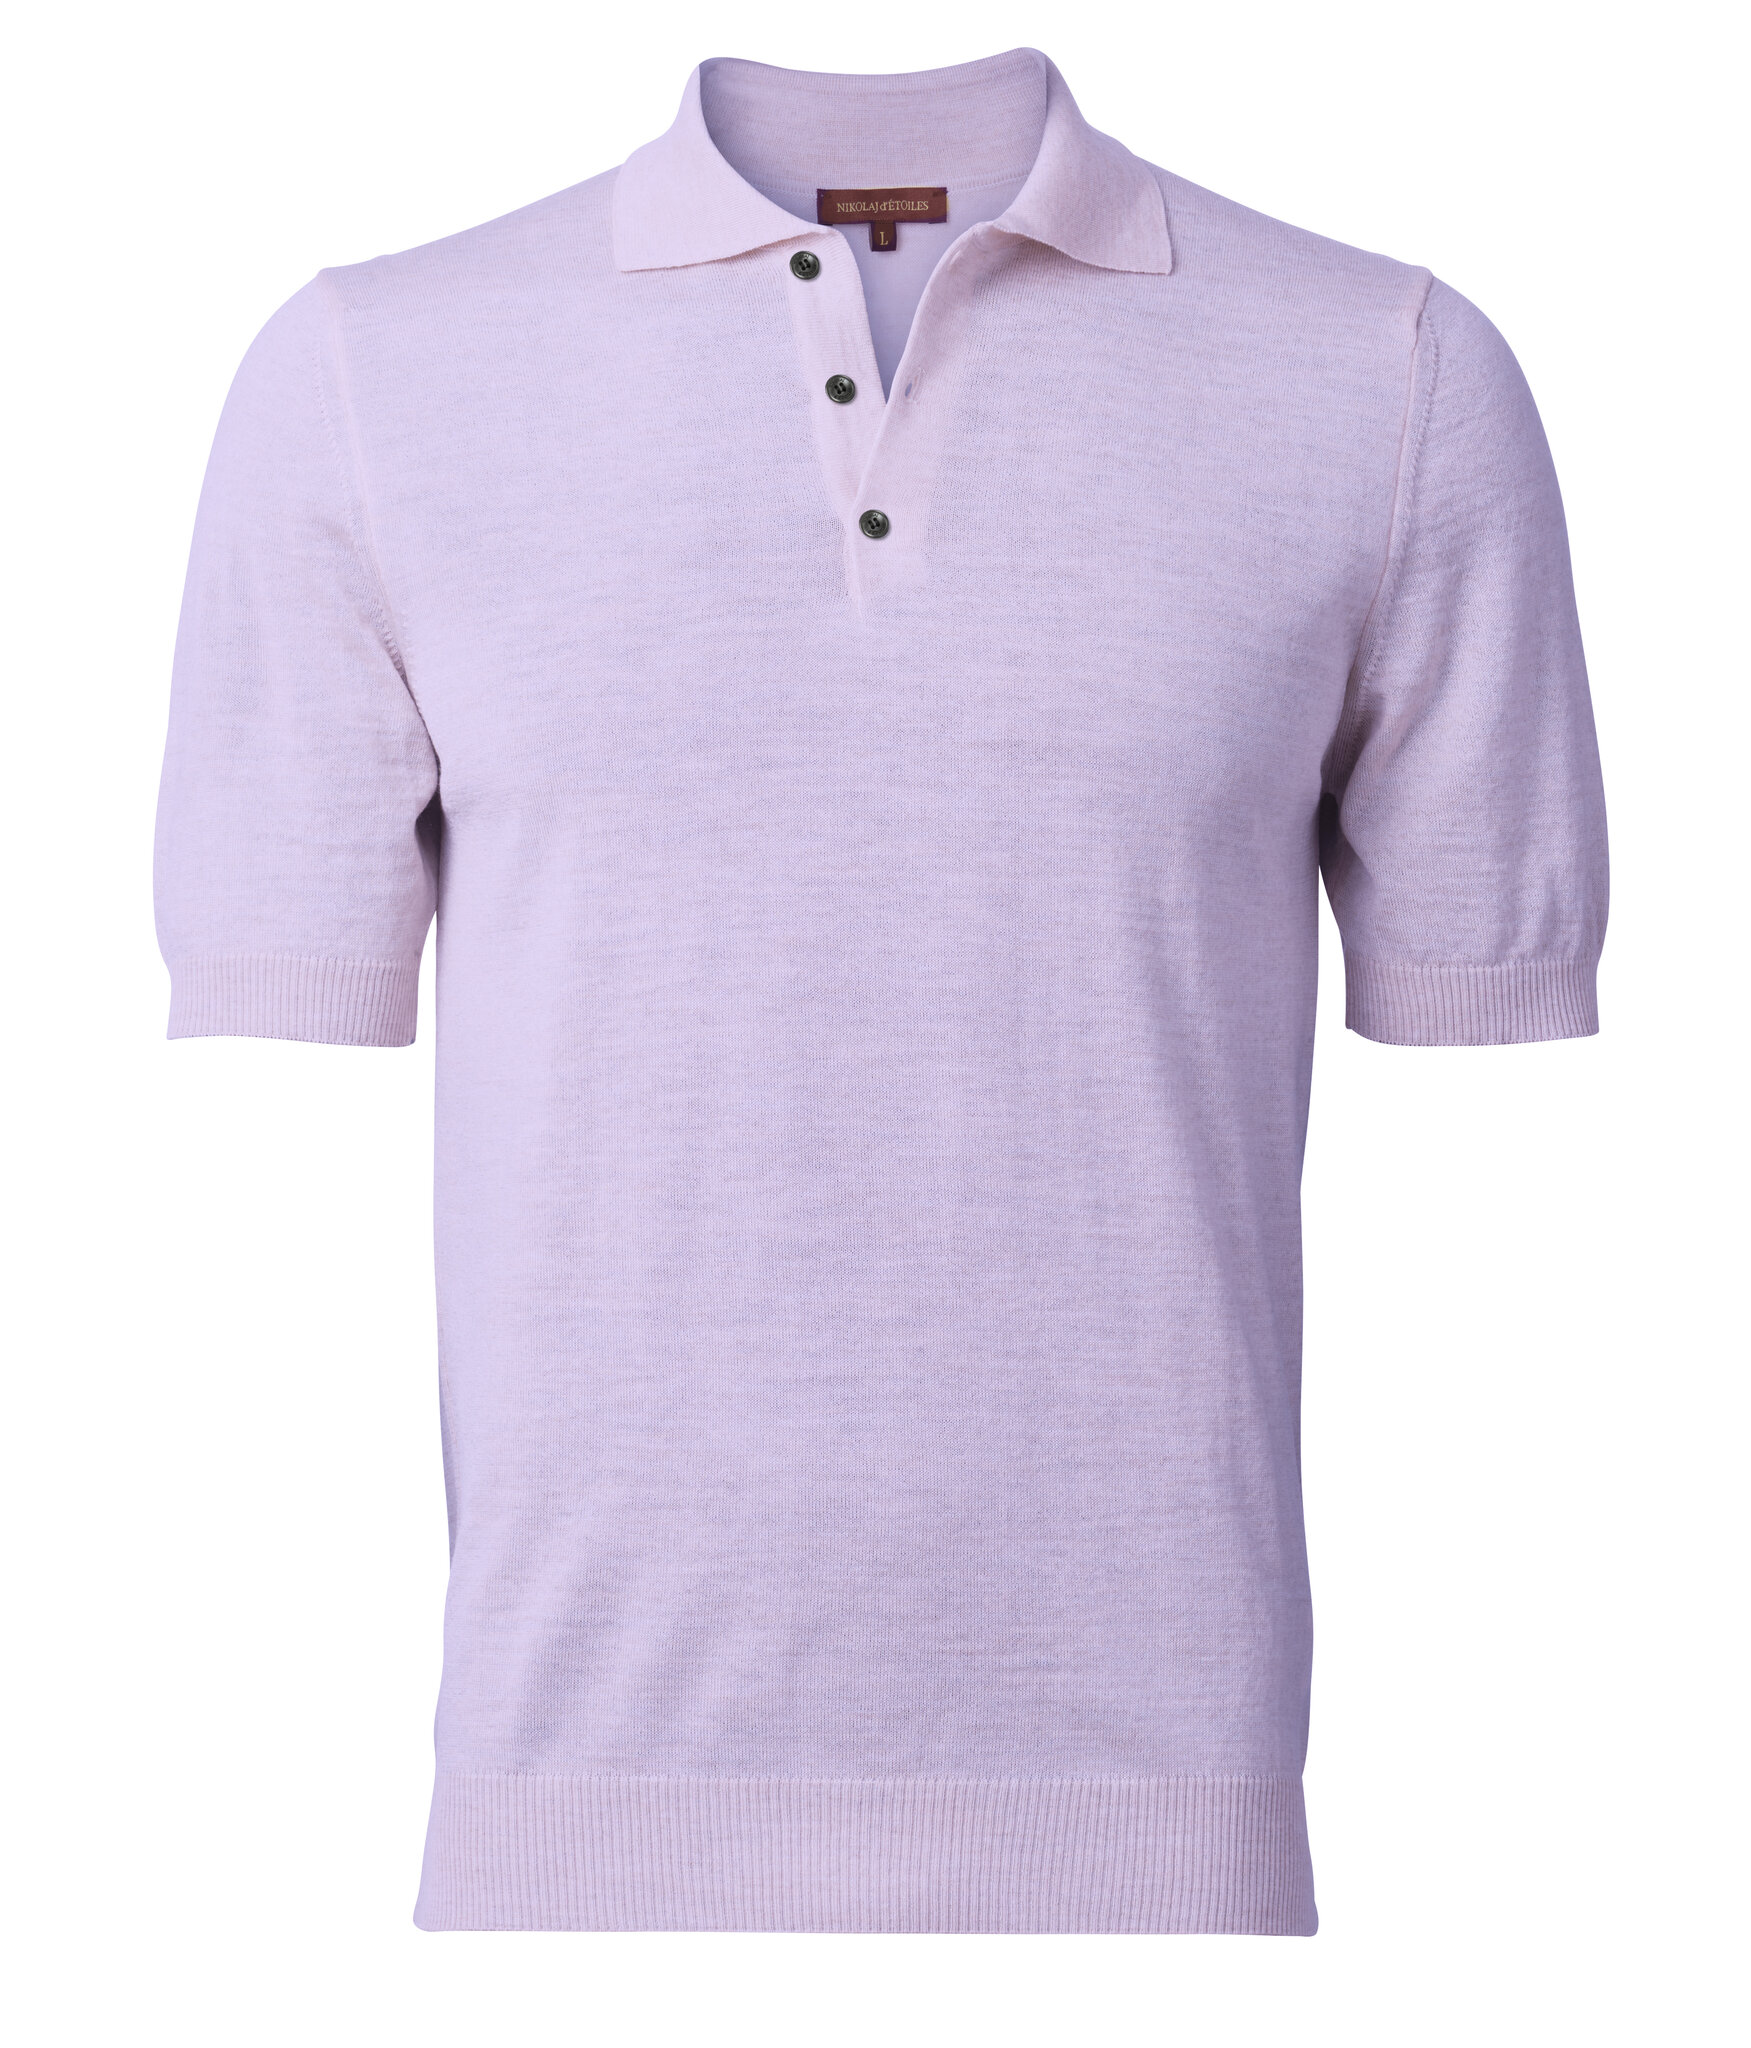 Fritz Short Sleeved Knitted Polo Shirt